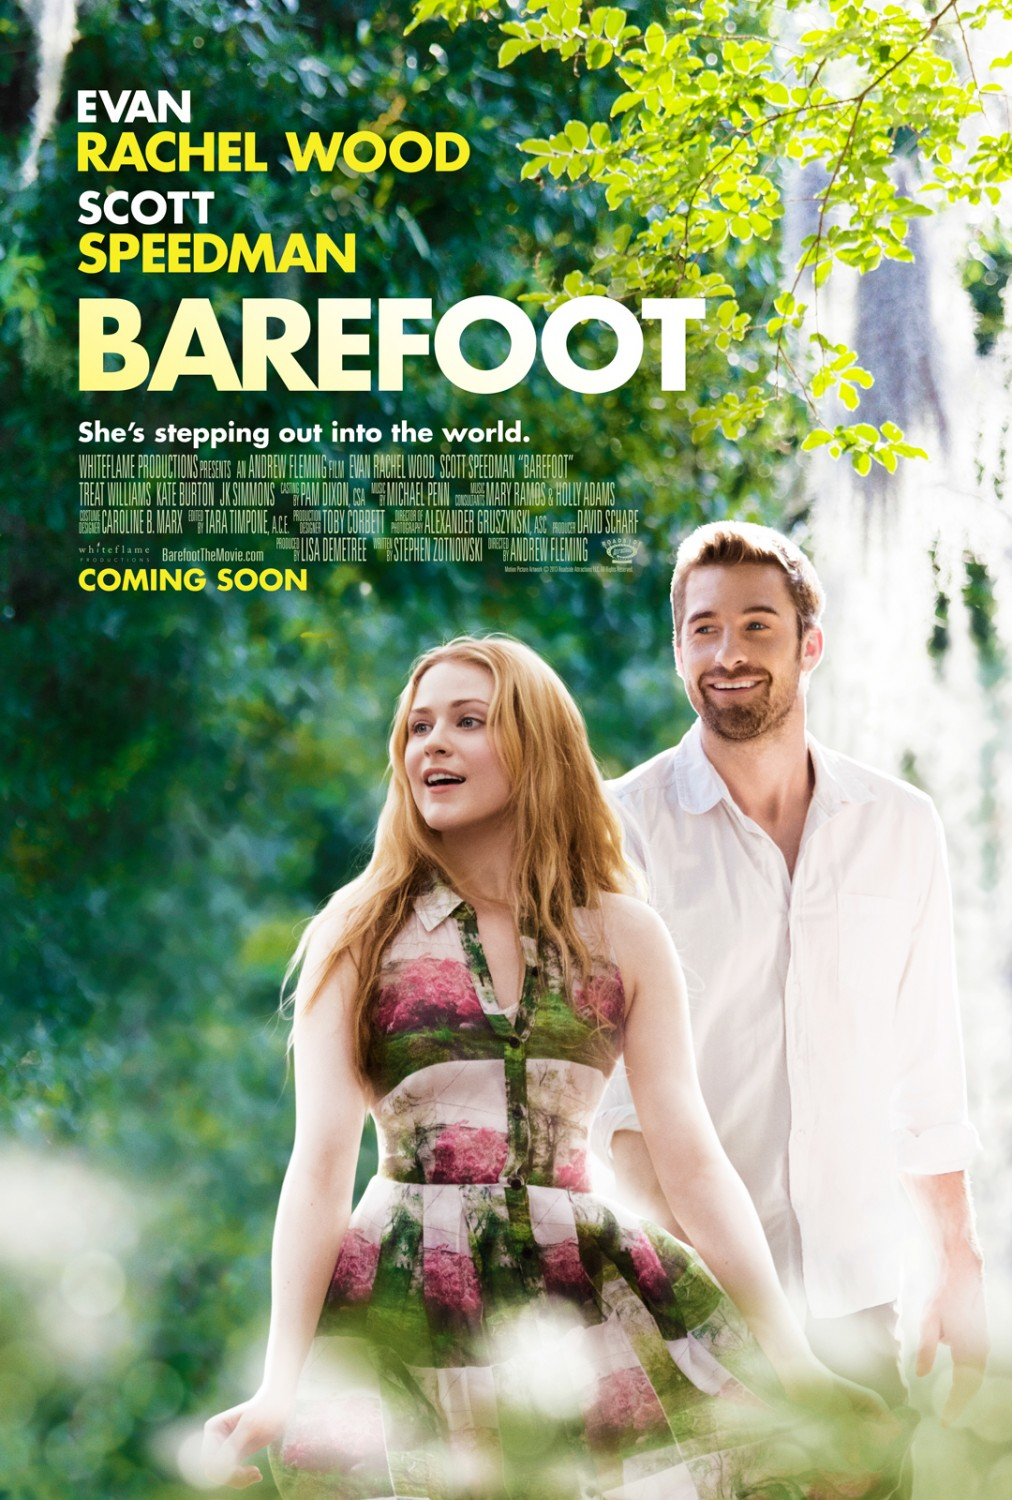 BAREFFOOT-Official Poster Banner PROMO POSTER XLG-06DEZEMBRO2013-01